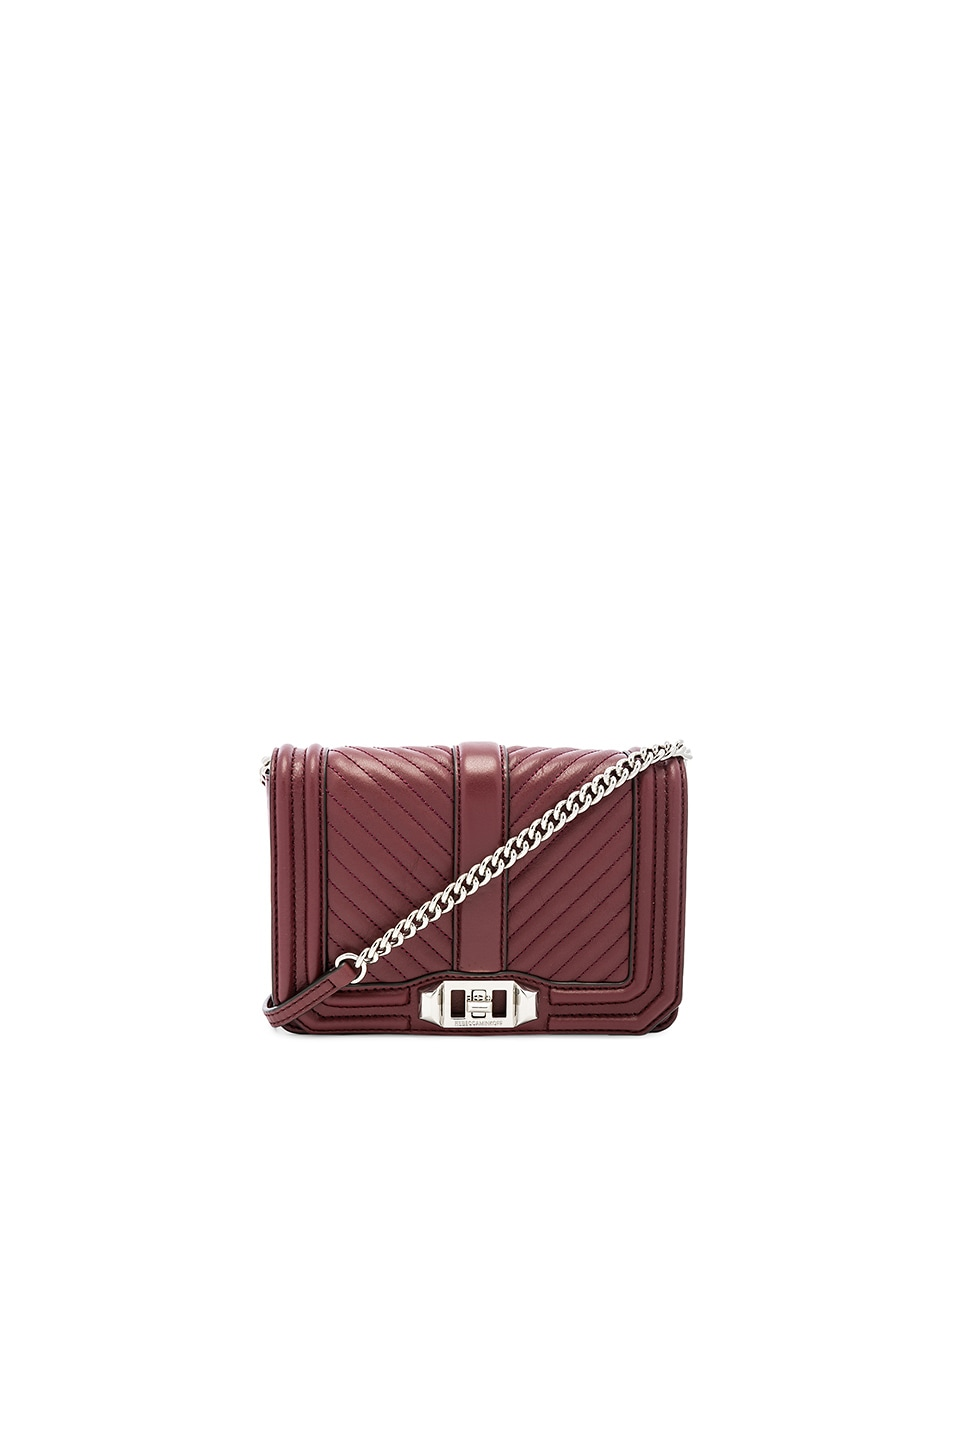 Rebecca Minkoff Chevron Quilted Small Love Bag in Bordeaux